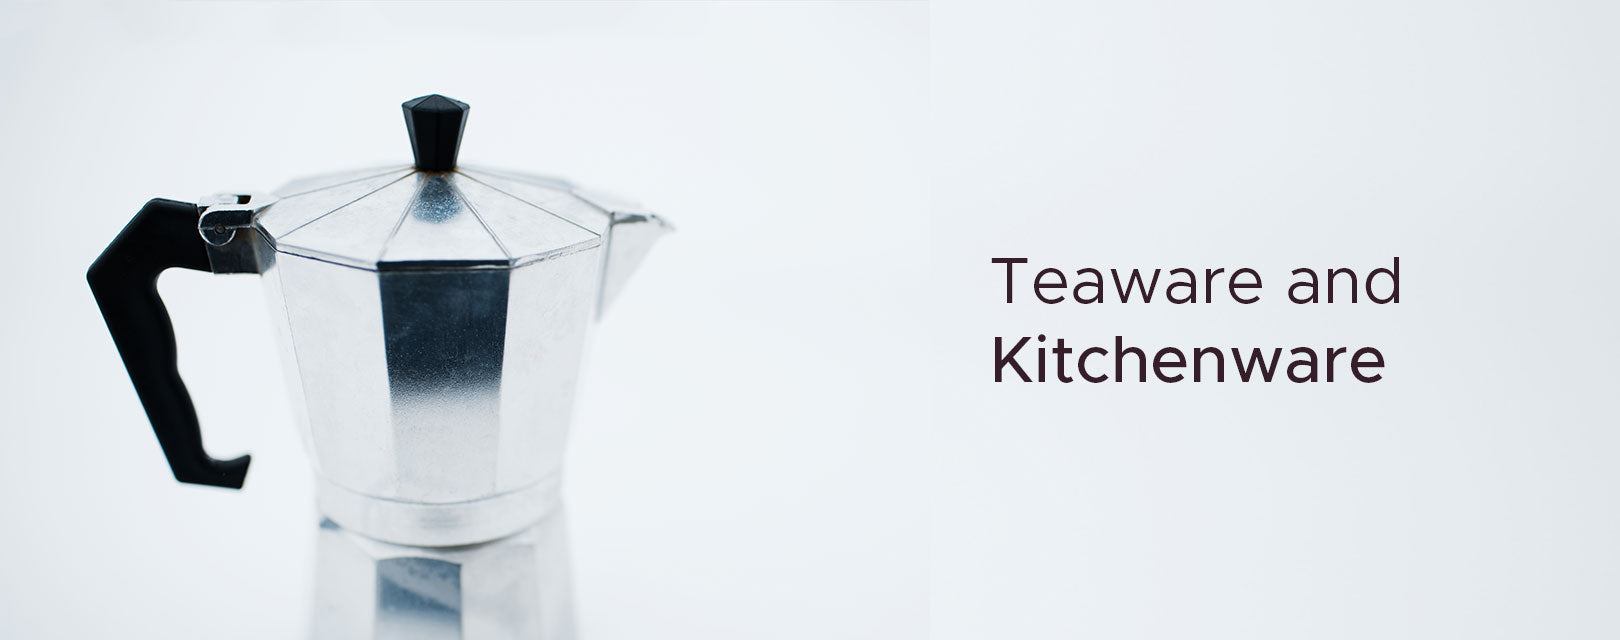 Teaware & Kitchenware